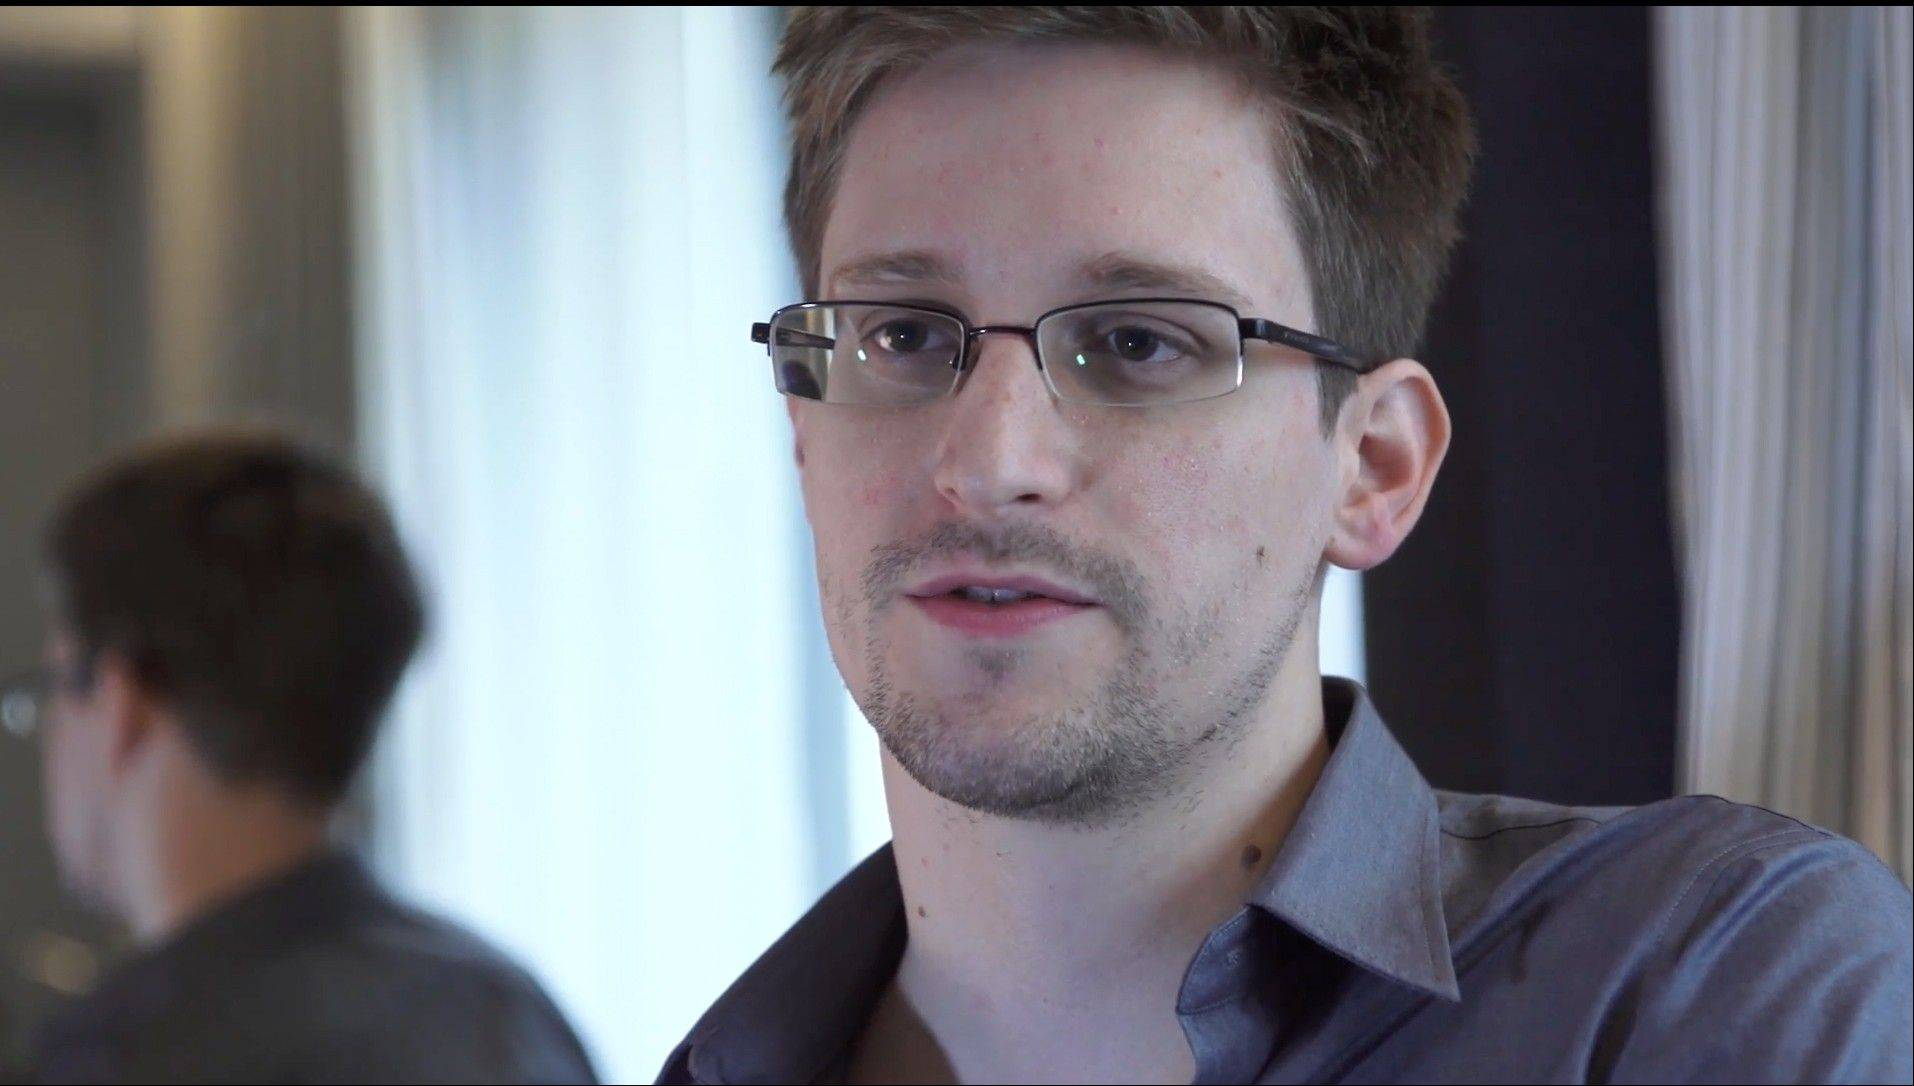 A lawyer advising National Security Agency leaker Edward Snowden says his asylum status has not been resolved and that he is going to stay at the Moscow airport for now.